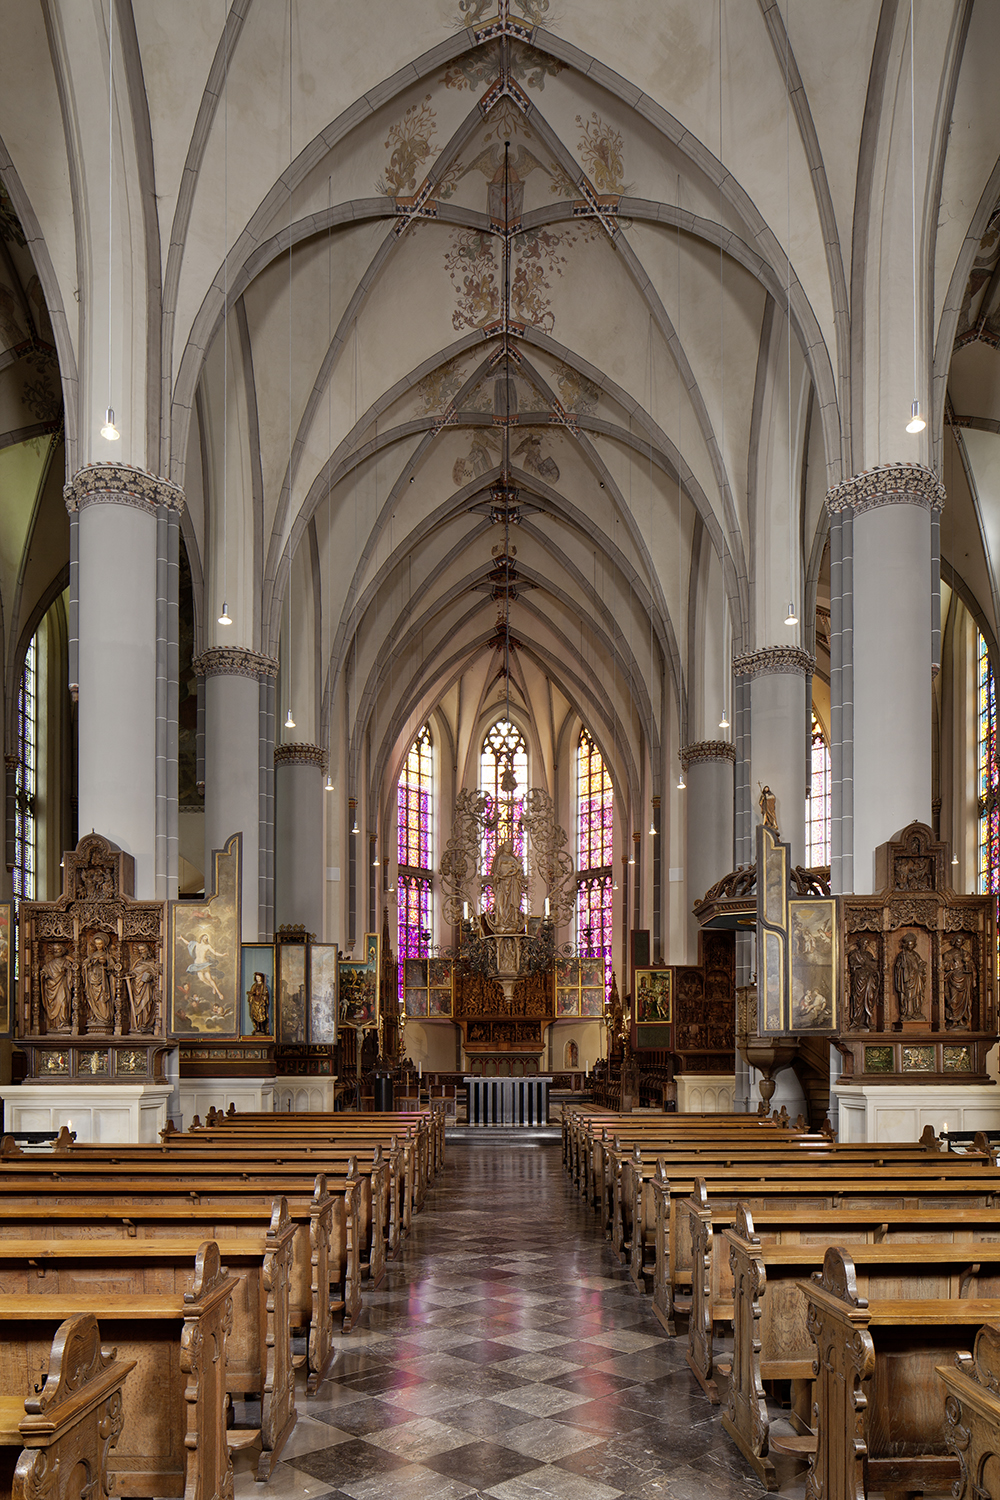 Richly furnished interior of St. Nicolai in Kalkar (Photo: LVR-Adr, Silvia Margri Wolf, 2013)